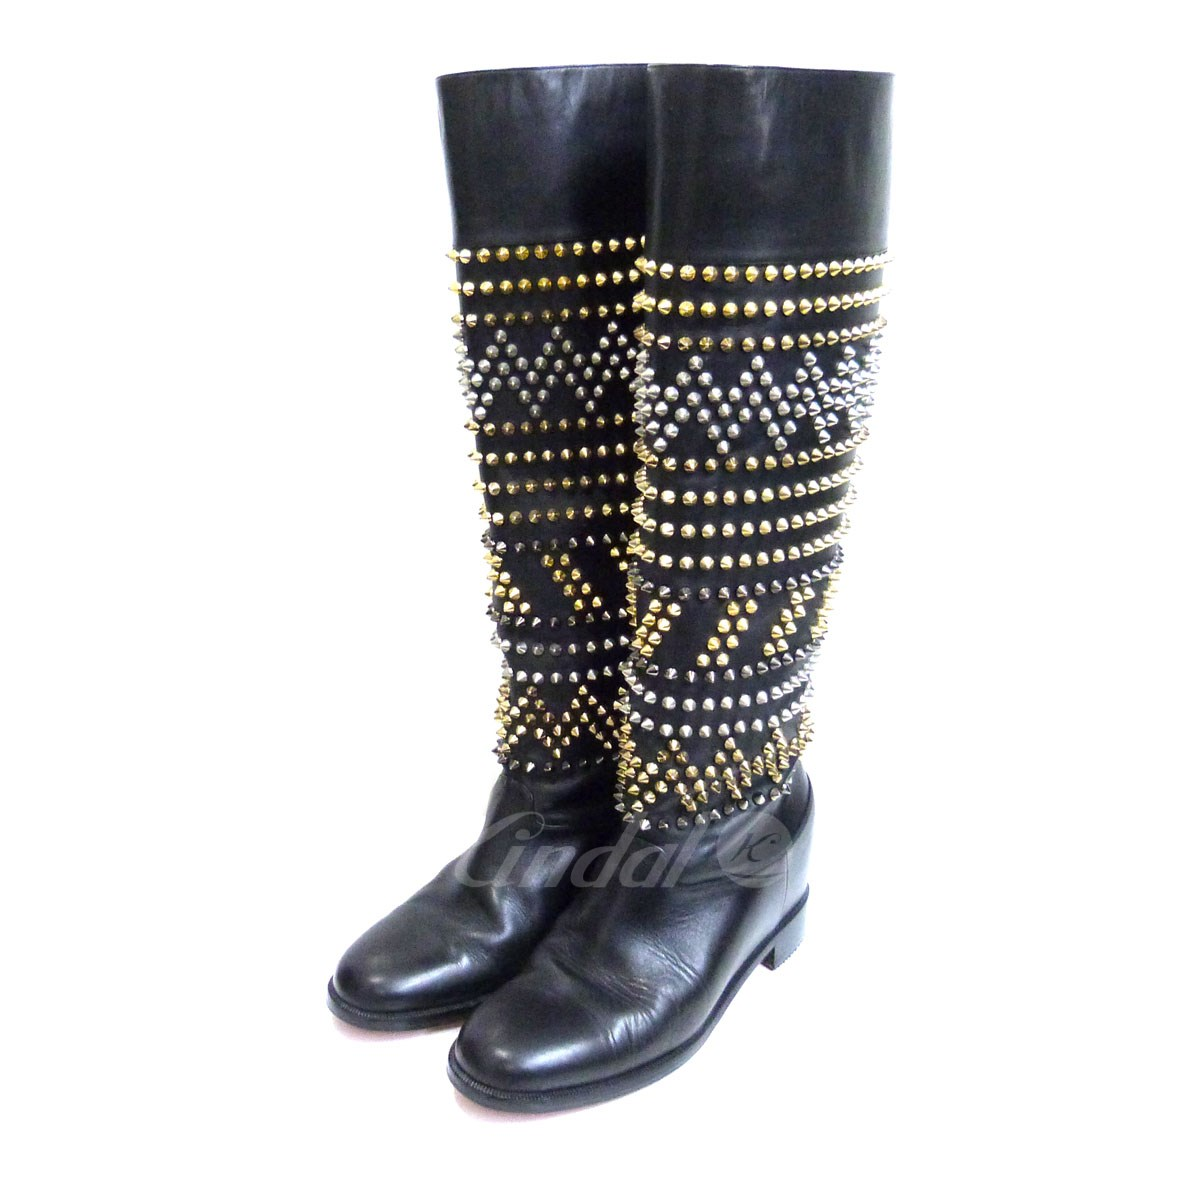 separation shoes f32da 4f294 CHRISTIAN LOUBOUTIN spikes studs long leather boots black size: 37